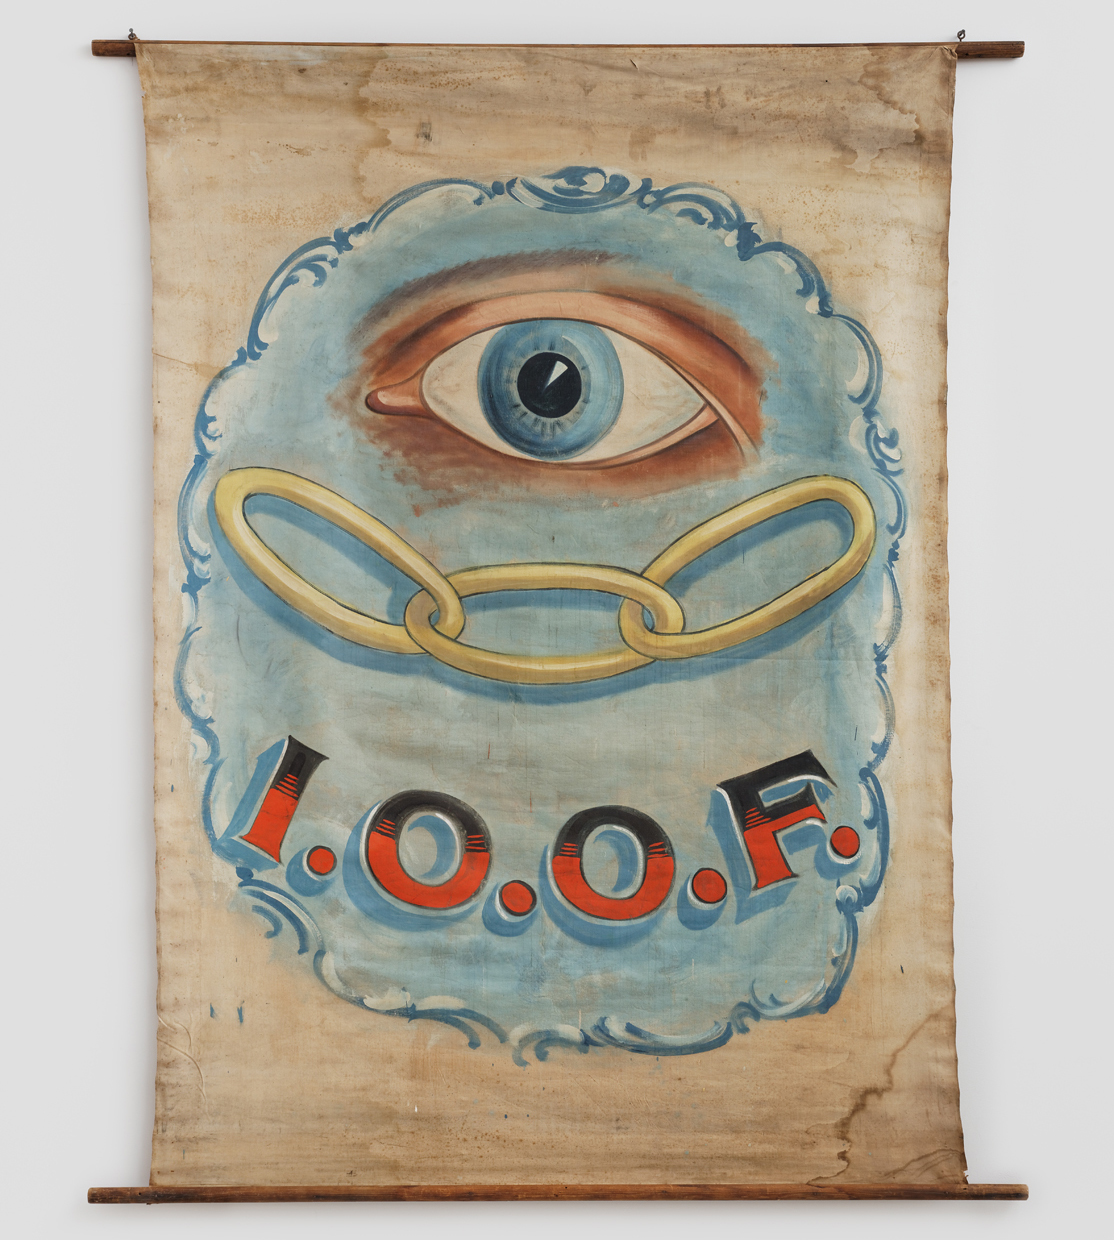 Independent Order of Odd Fellows Banner, Artist unidentified (United States, 1900–1920), paint on canvas, with wood and metal, 88 1/2 x 71 inches (courtesy American Folk Art Museum)